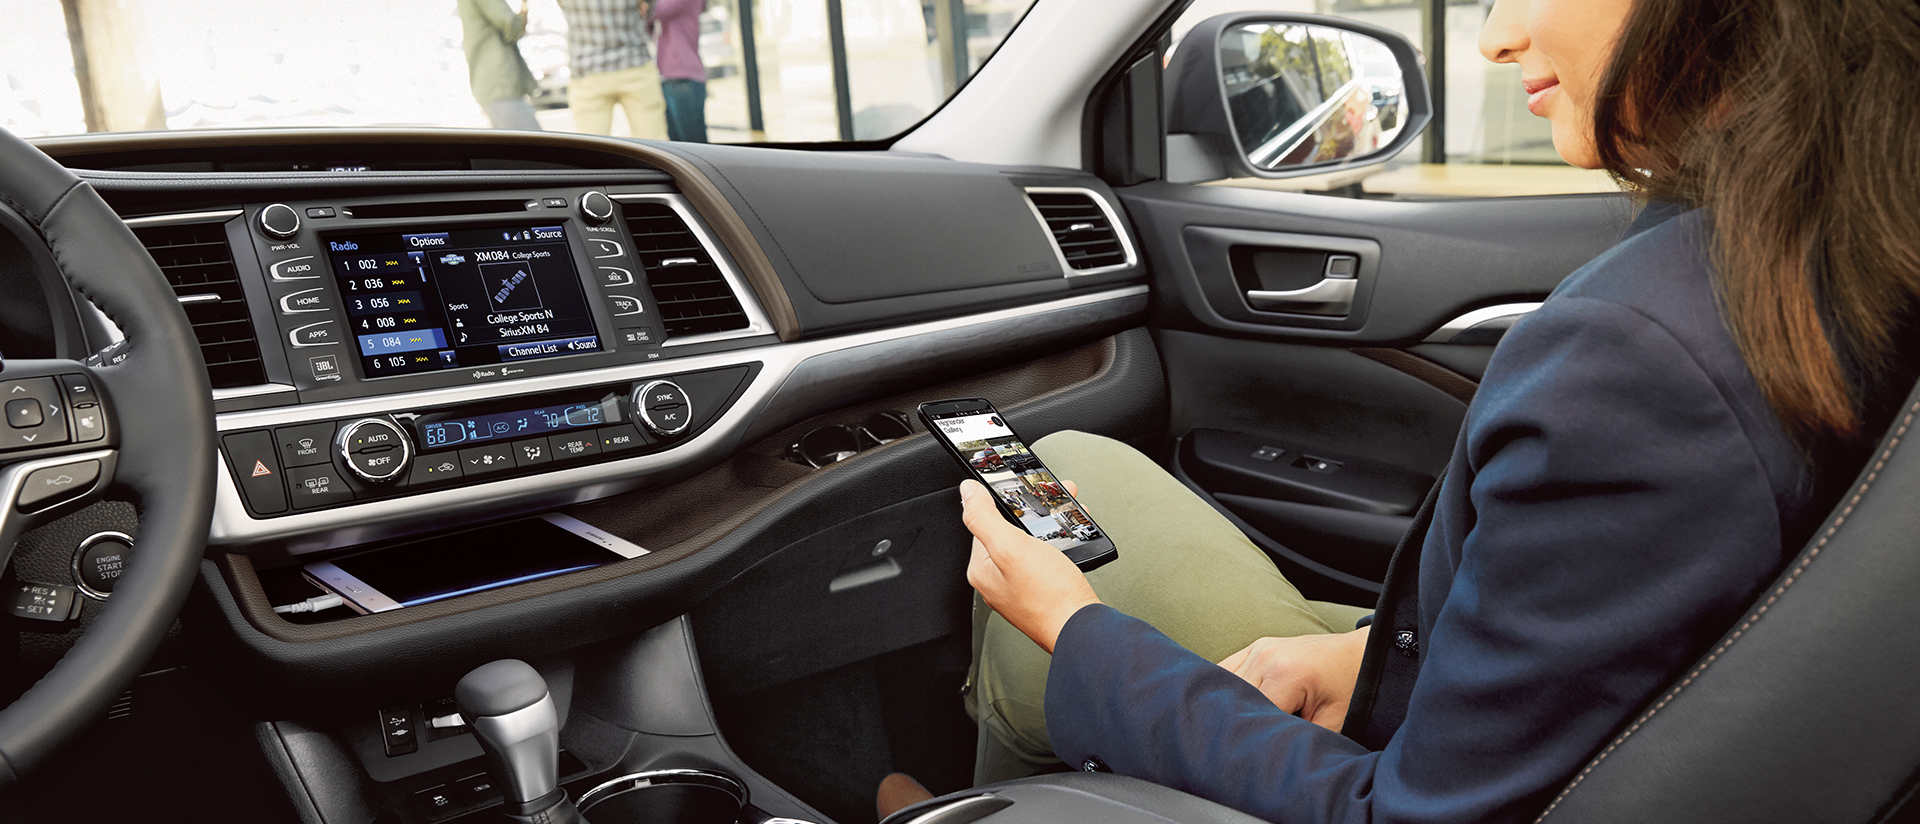 Tour the 2017 Toyota Highlander Interior Design and Features